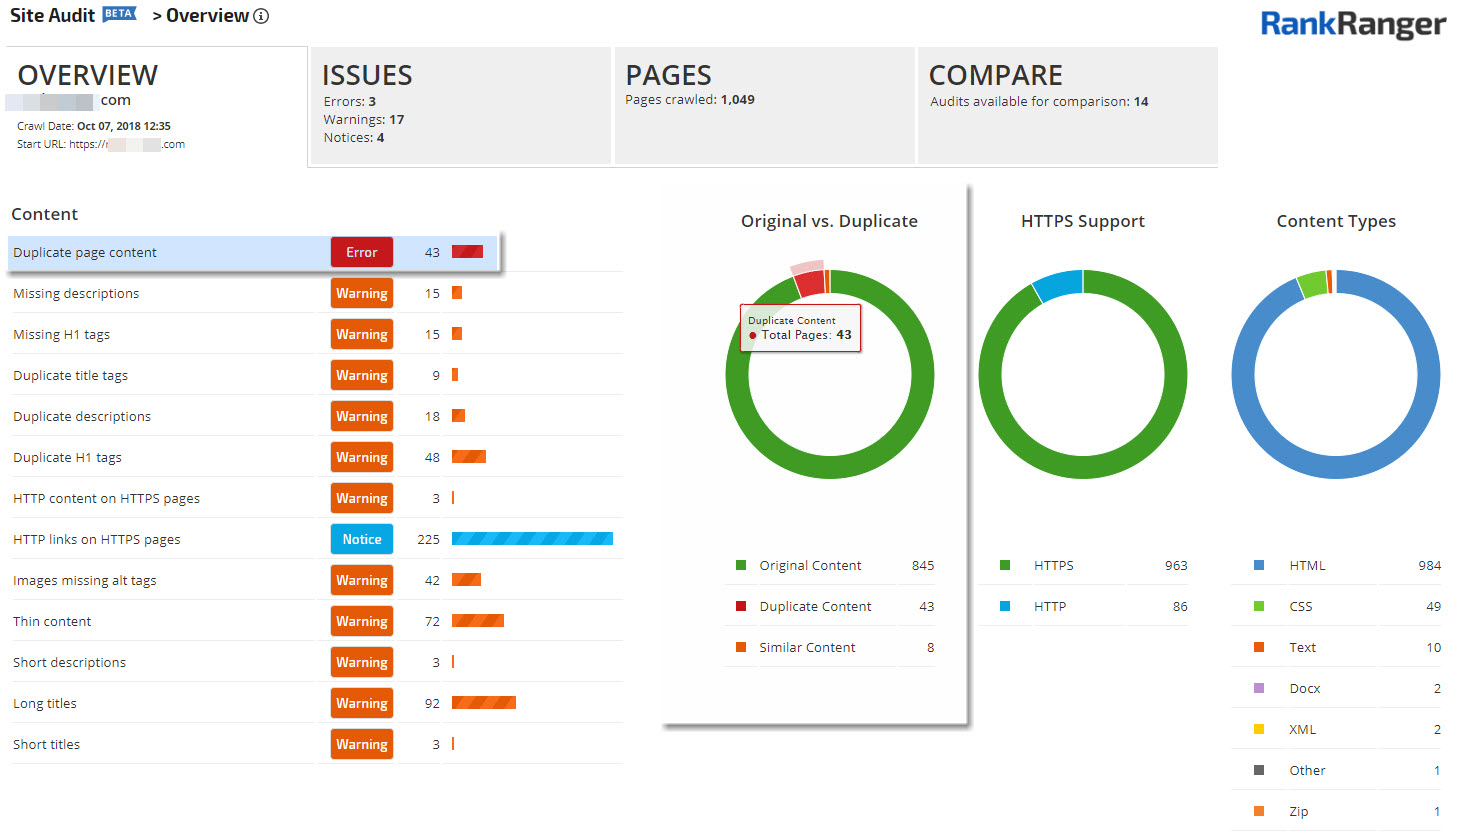 Site Audit Overview Screen